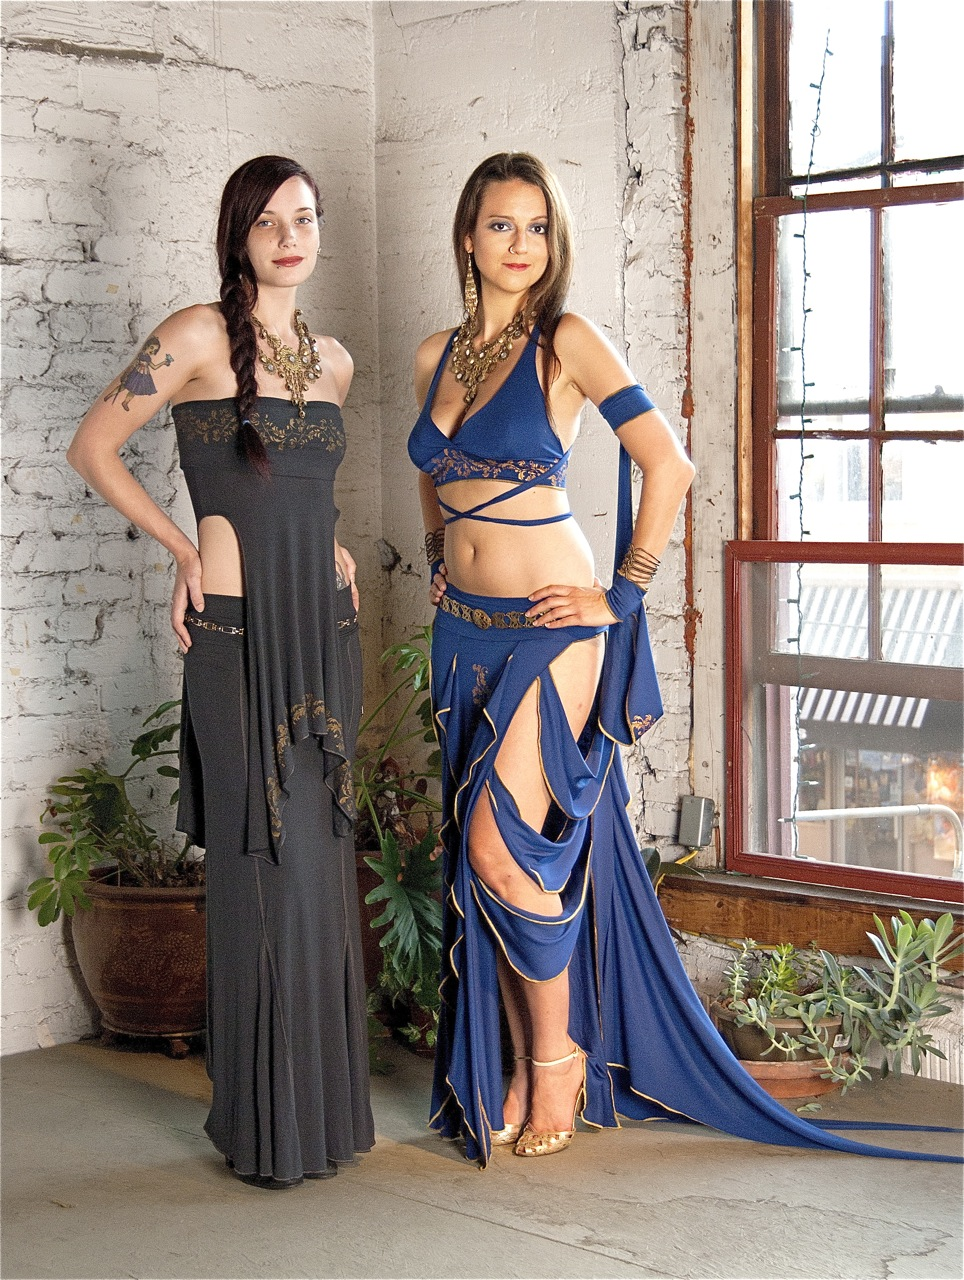 Women in noveau belly dance outfits by Accentuates Clothing